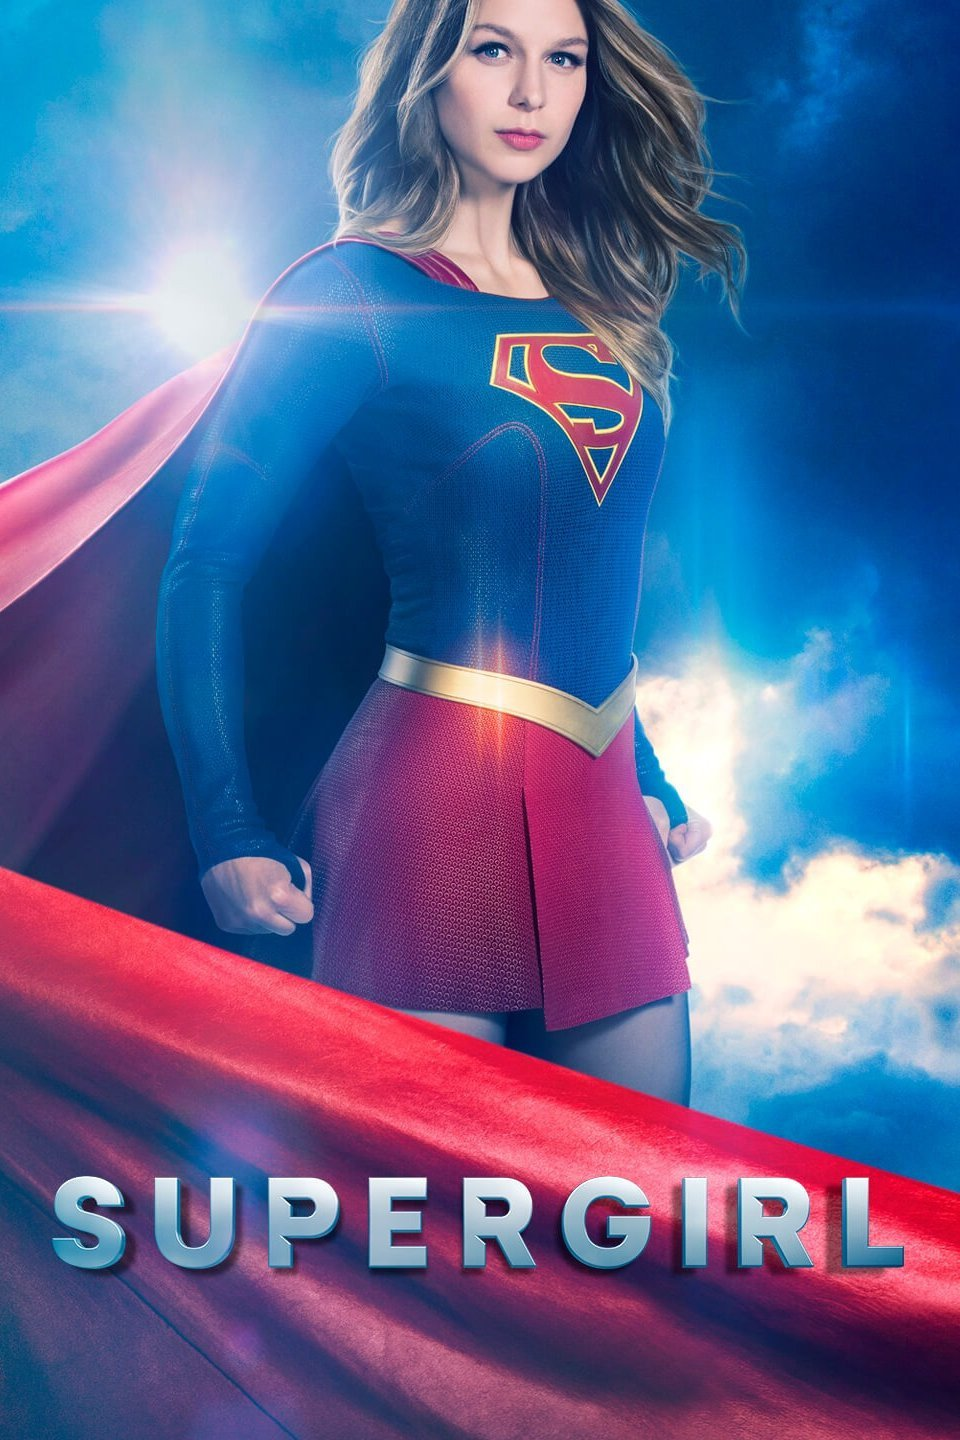 Supergirl Season 3 Episode 1 Download HDTV